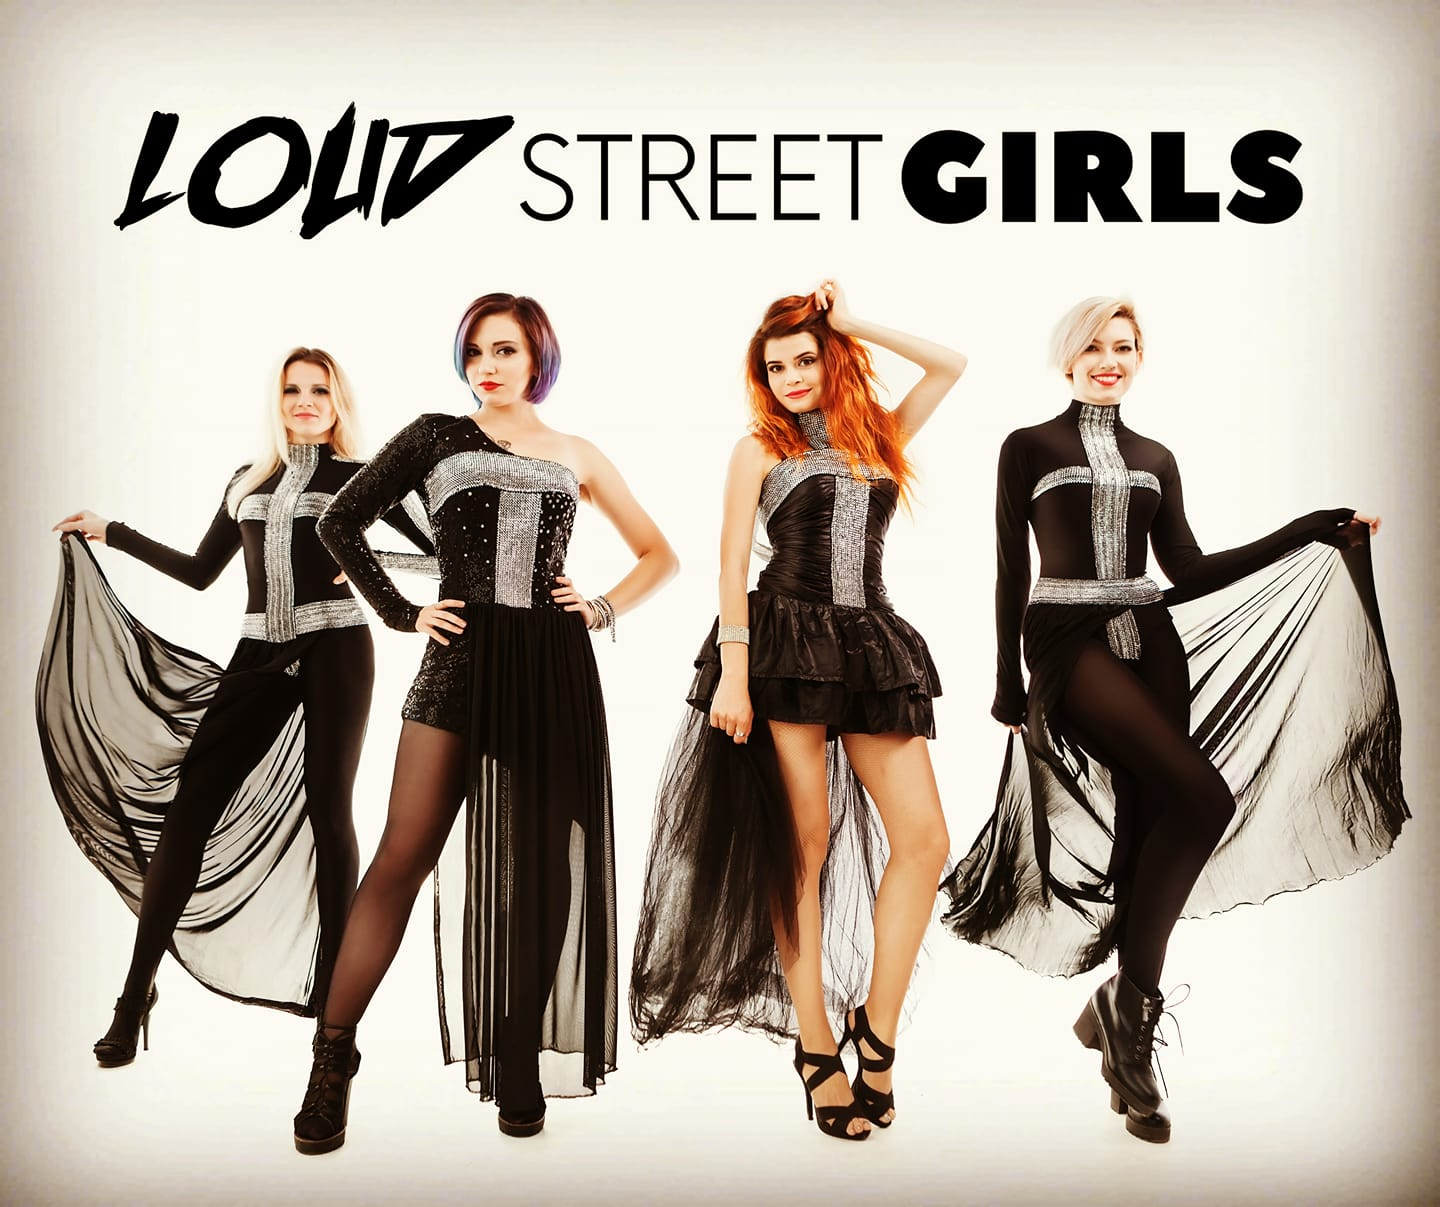 Loud street Girls 1